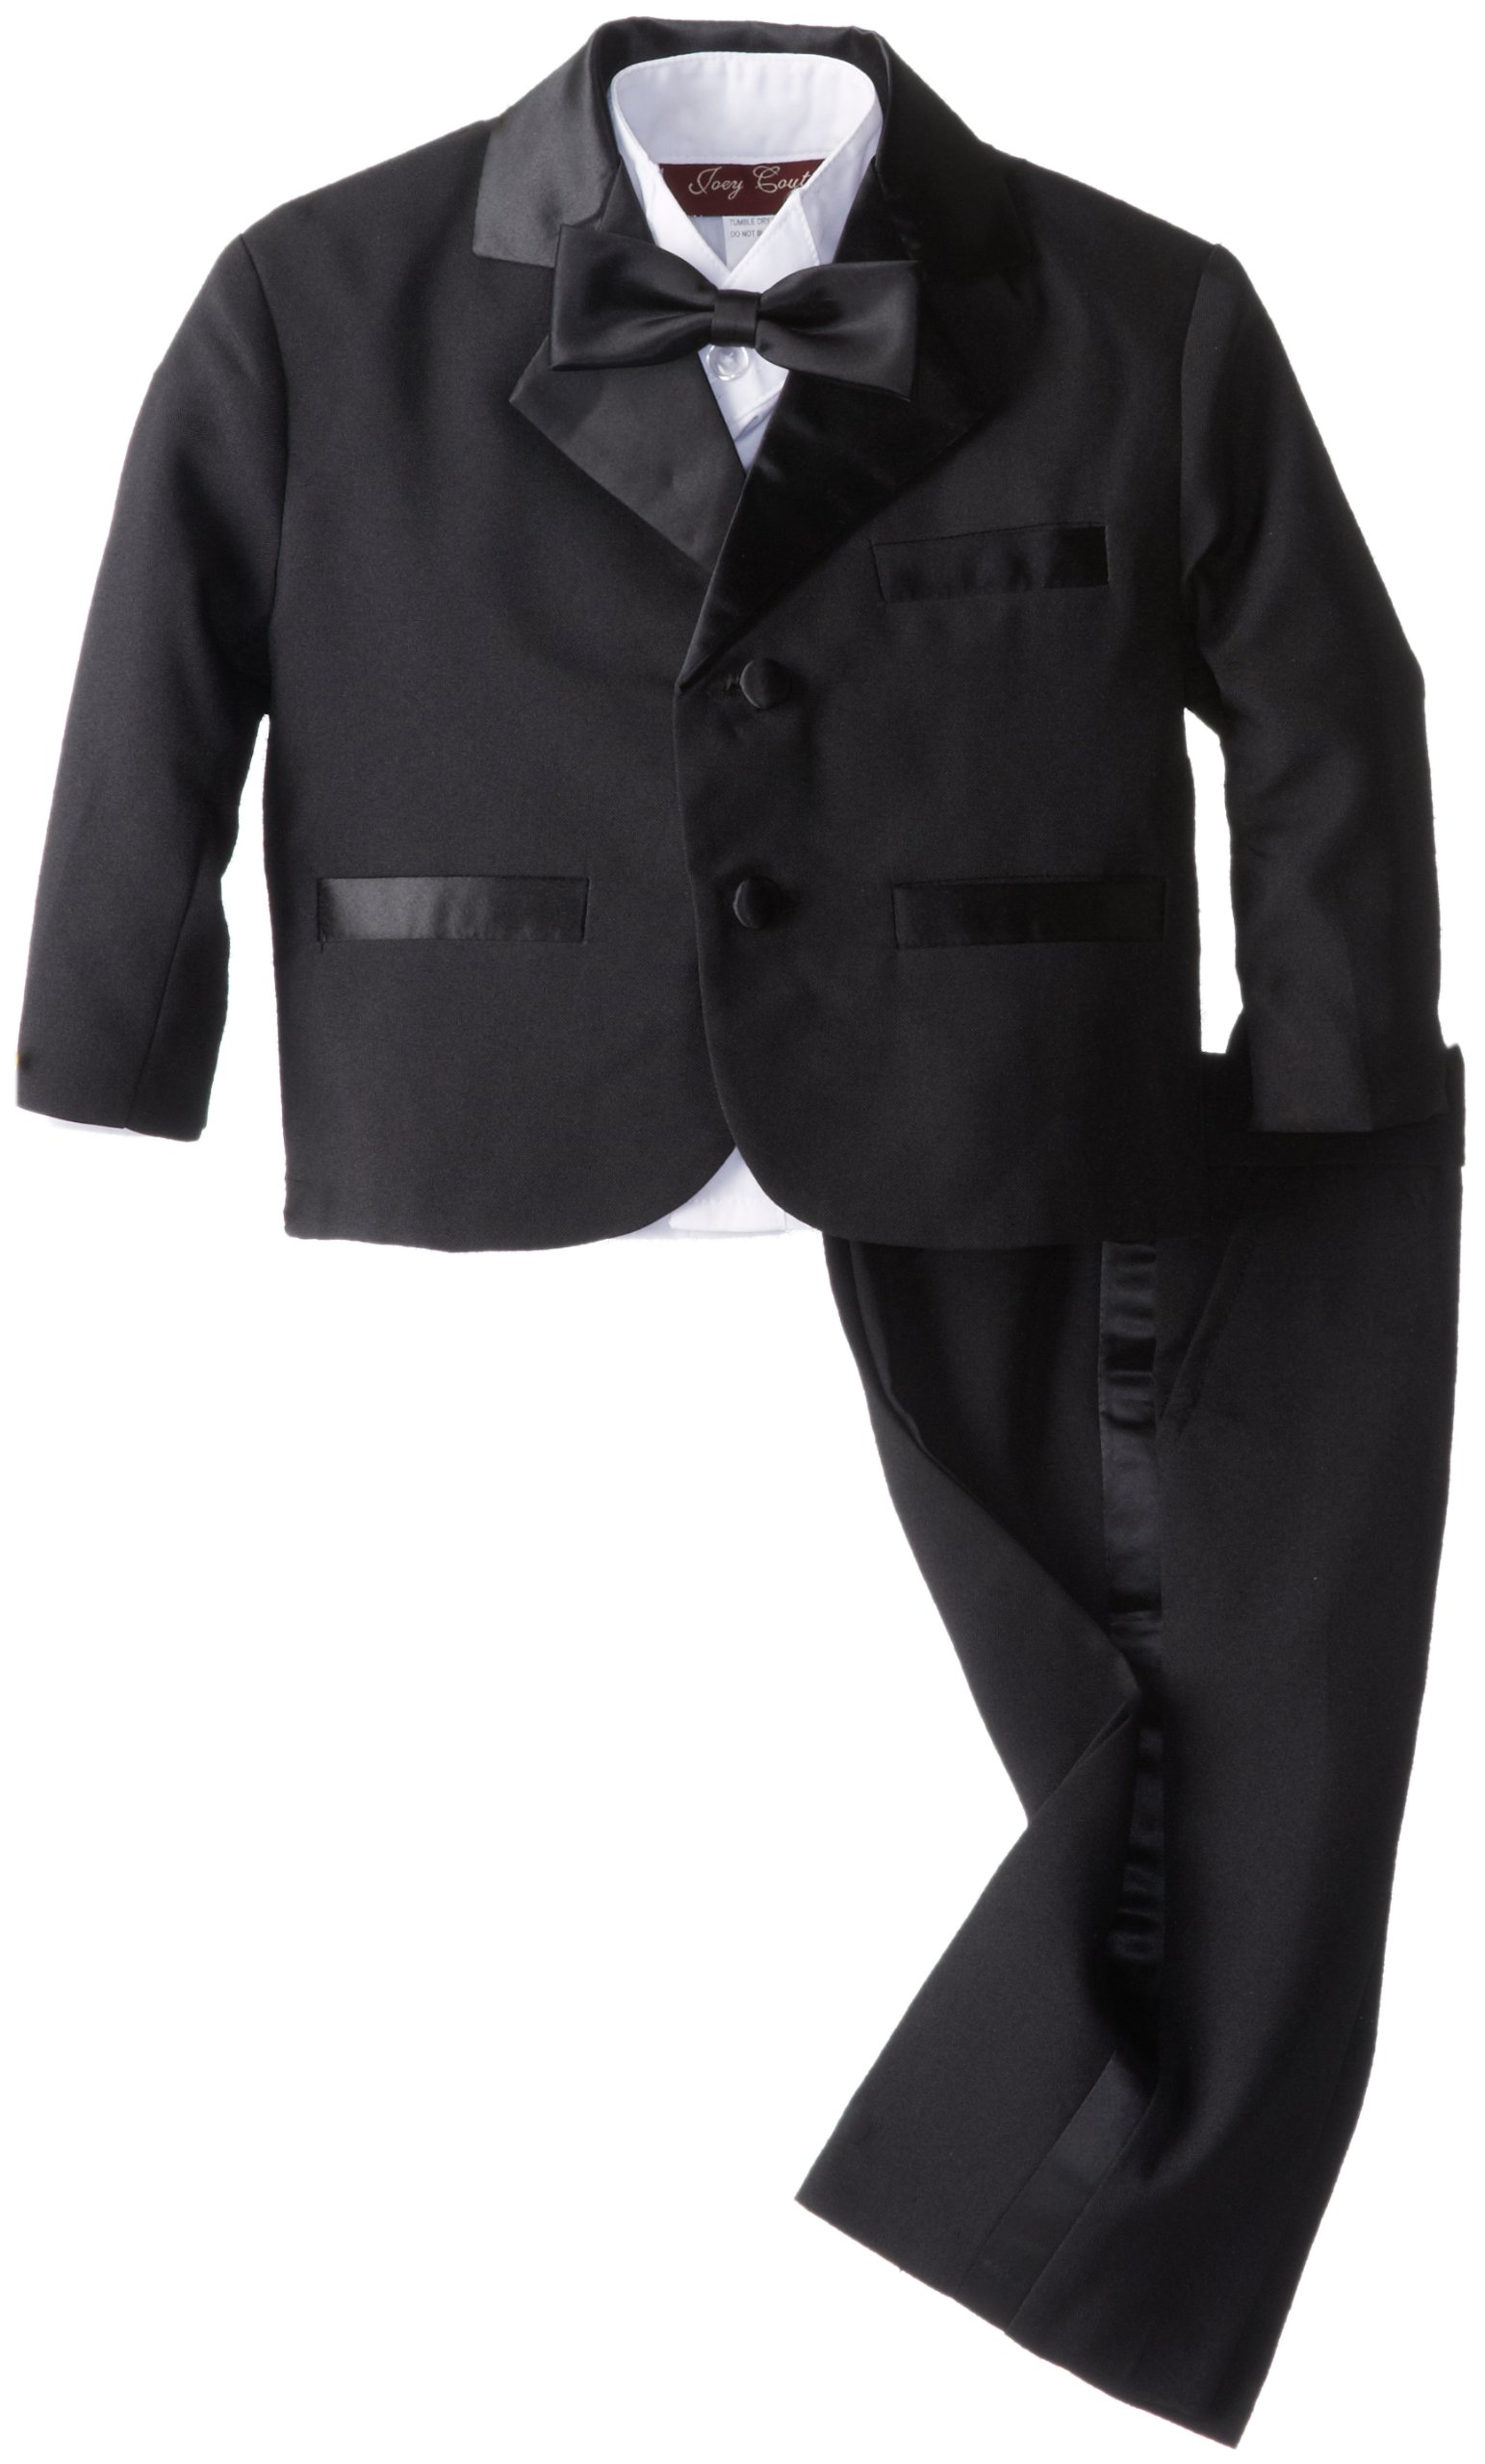 Joey Couture Baby Boys' Tuxedo Suit No Tail, Black, 18 Months/Large by Joey Couture